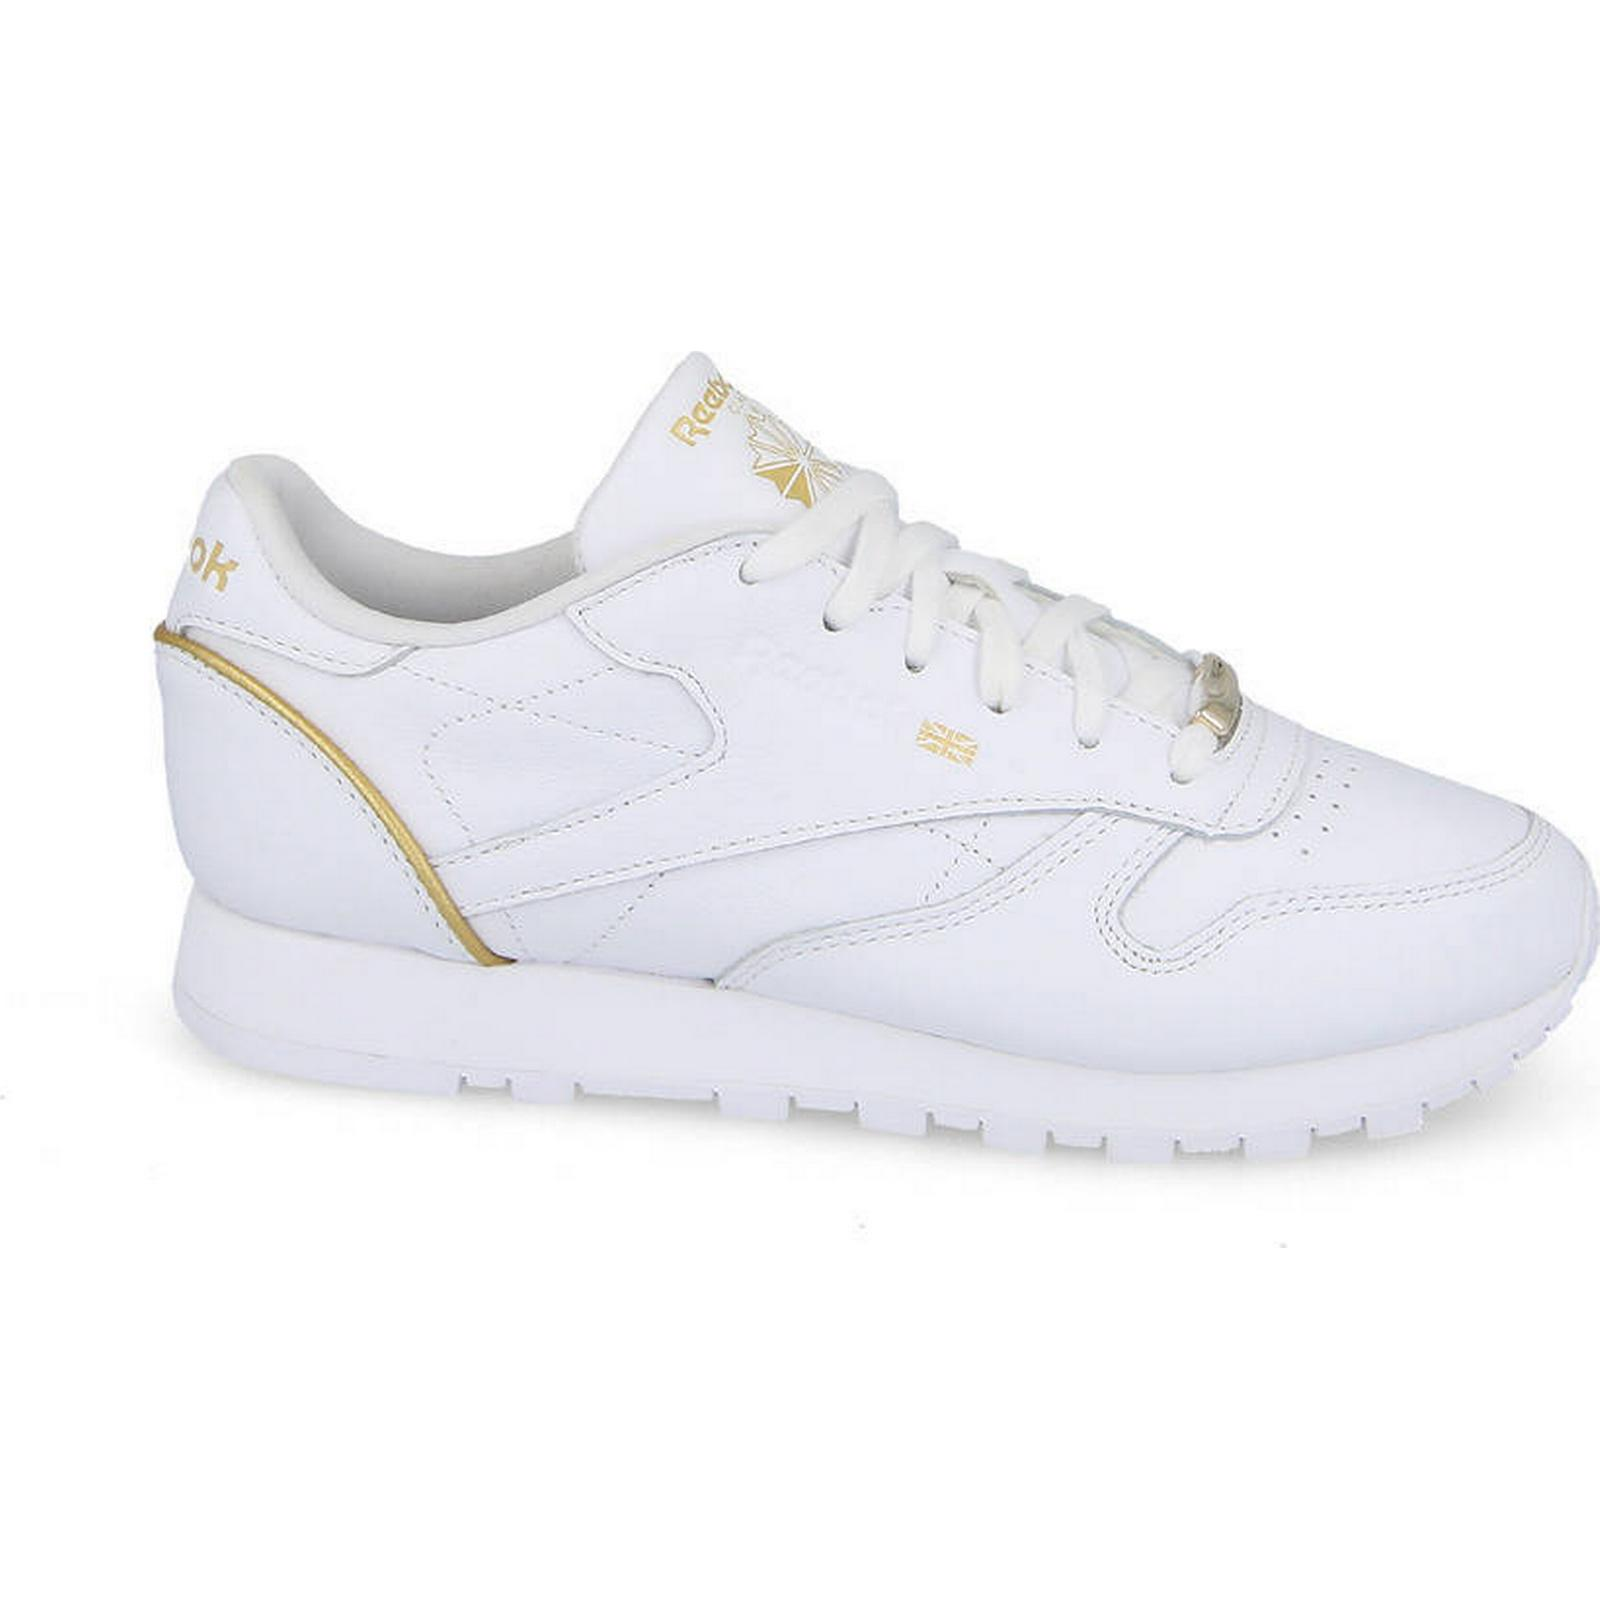 Reebok Classic Women's Shoes sneakers Reebok Classic Size Leather Hw BS9878 WHITE Size Classic 36 872e8c